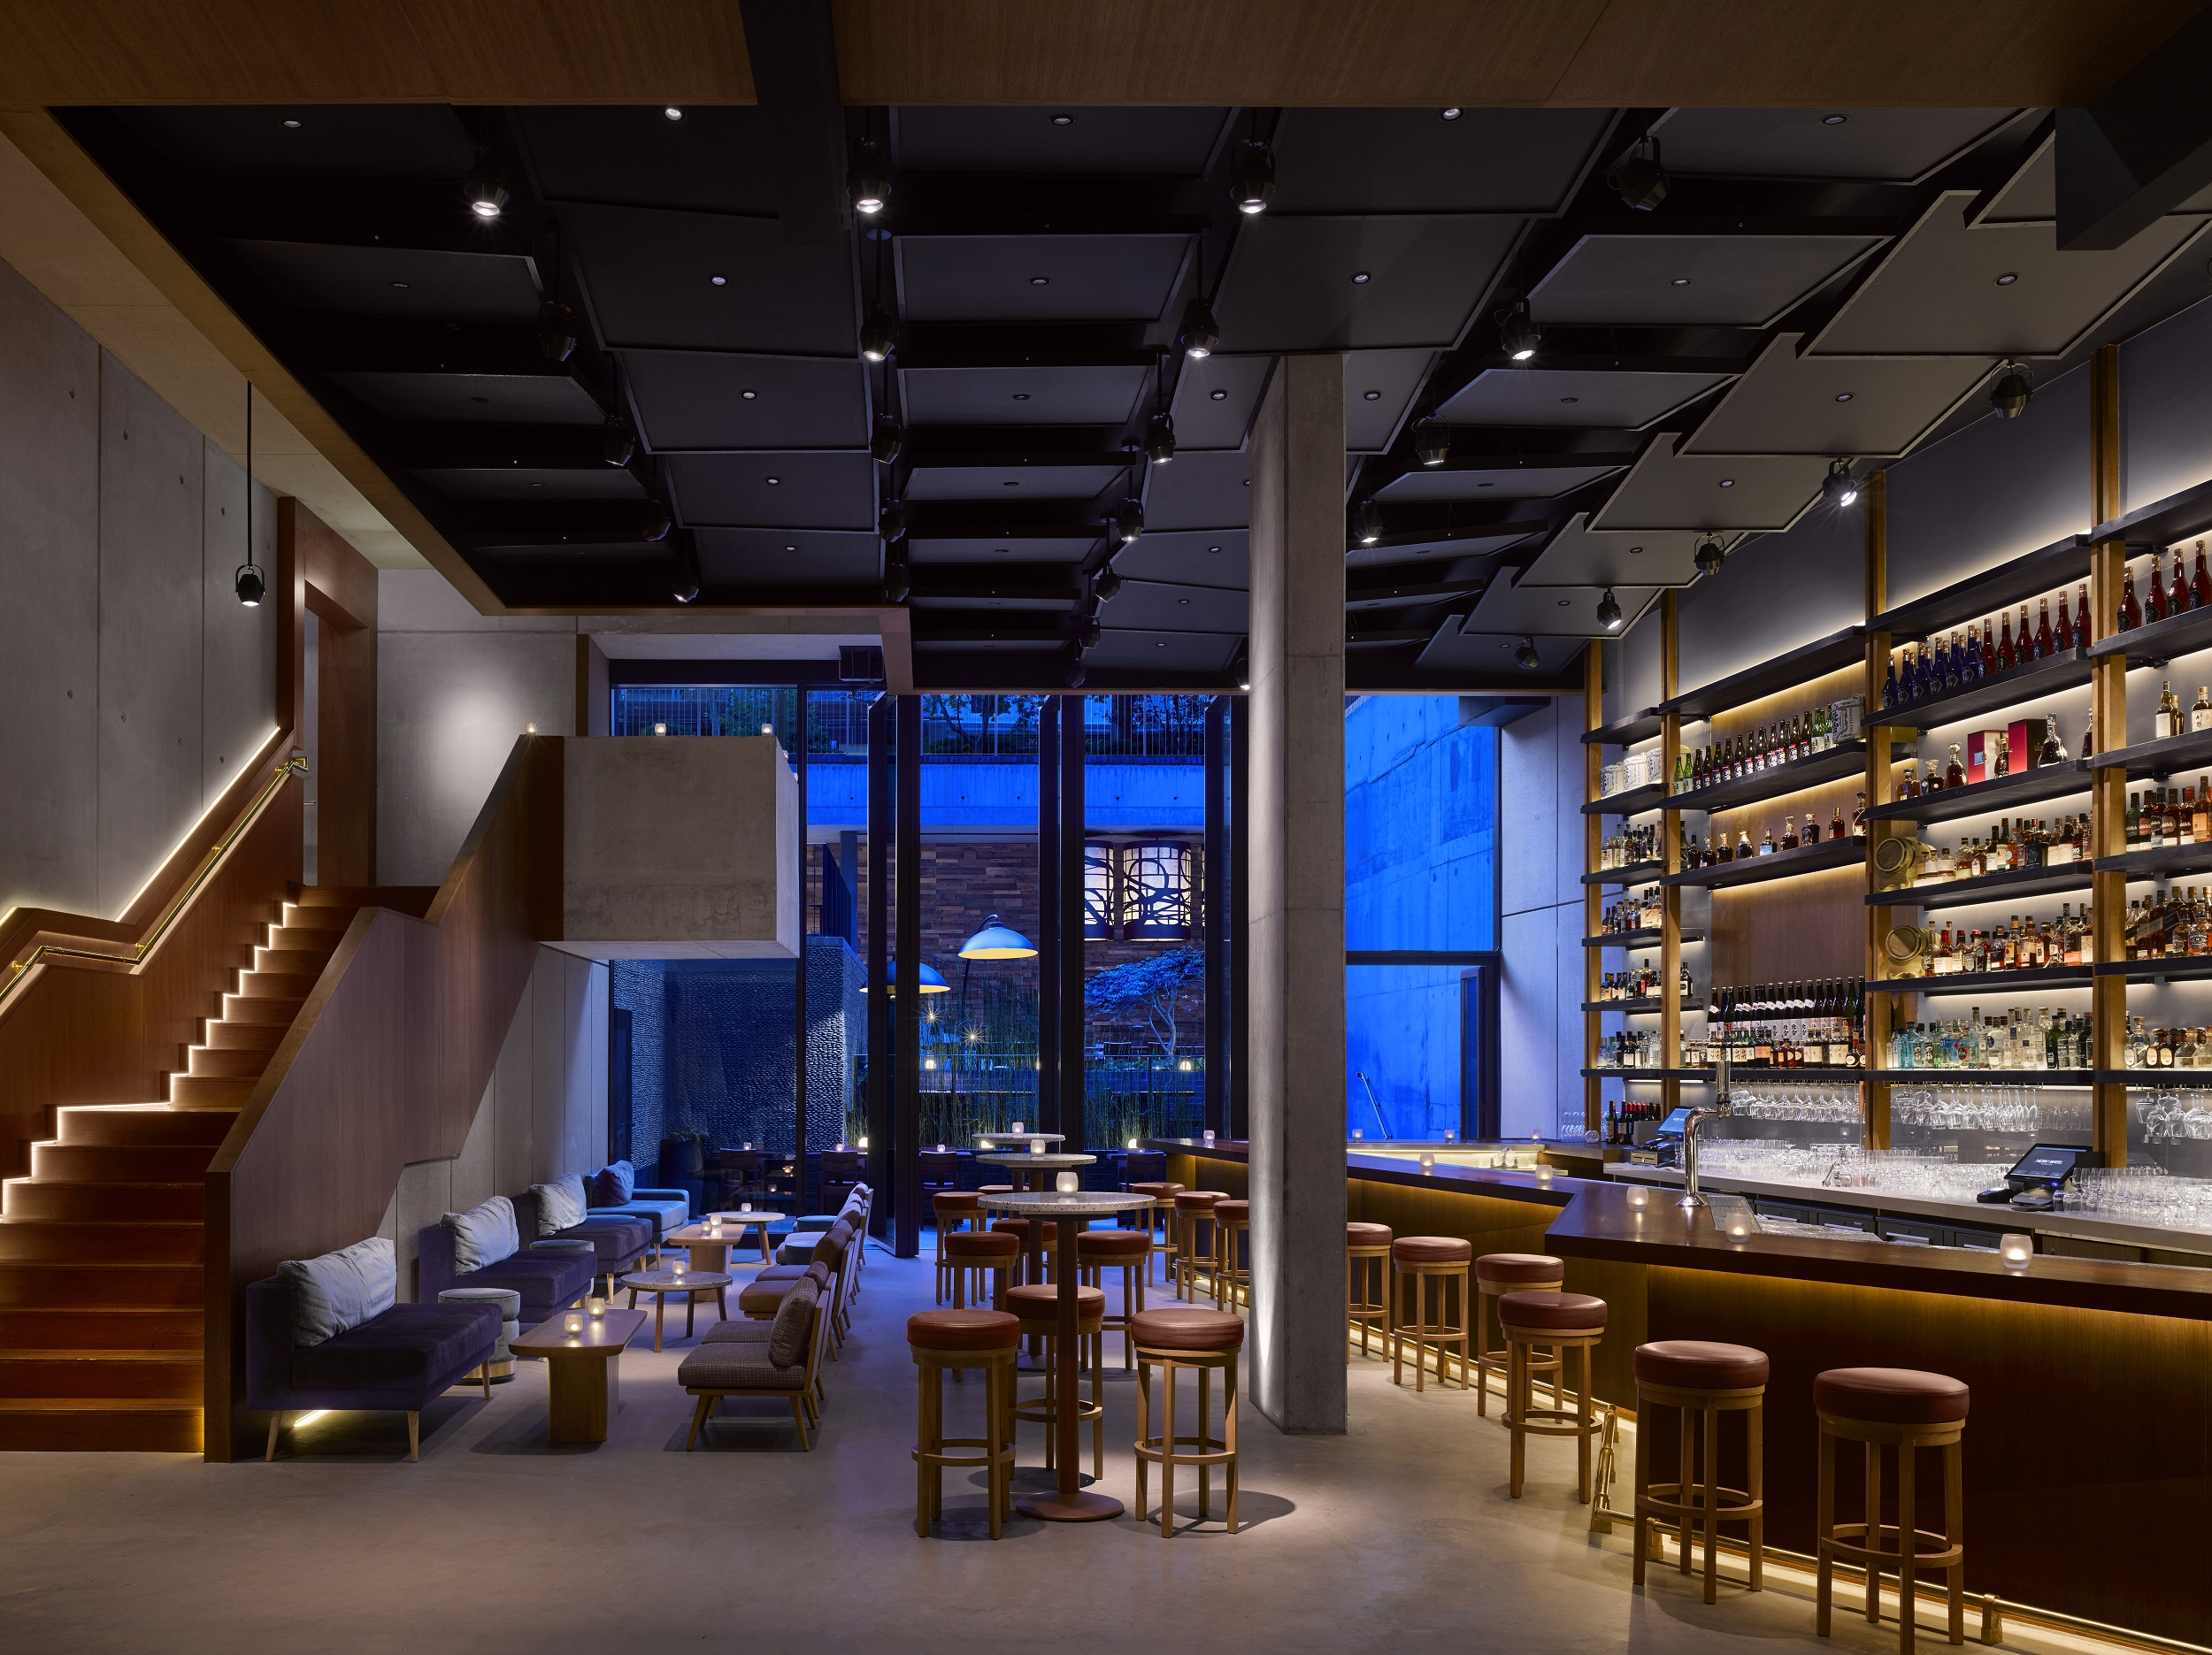 Nobu Collective - A culinary celebration of Omakase with world renowned Chef Nobu Matsuhisa